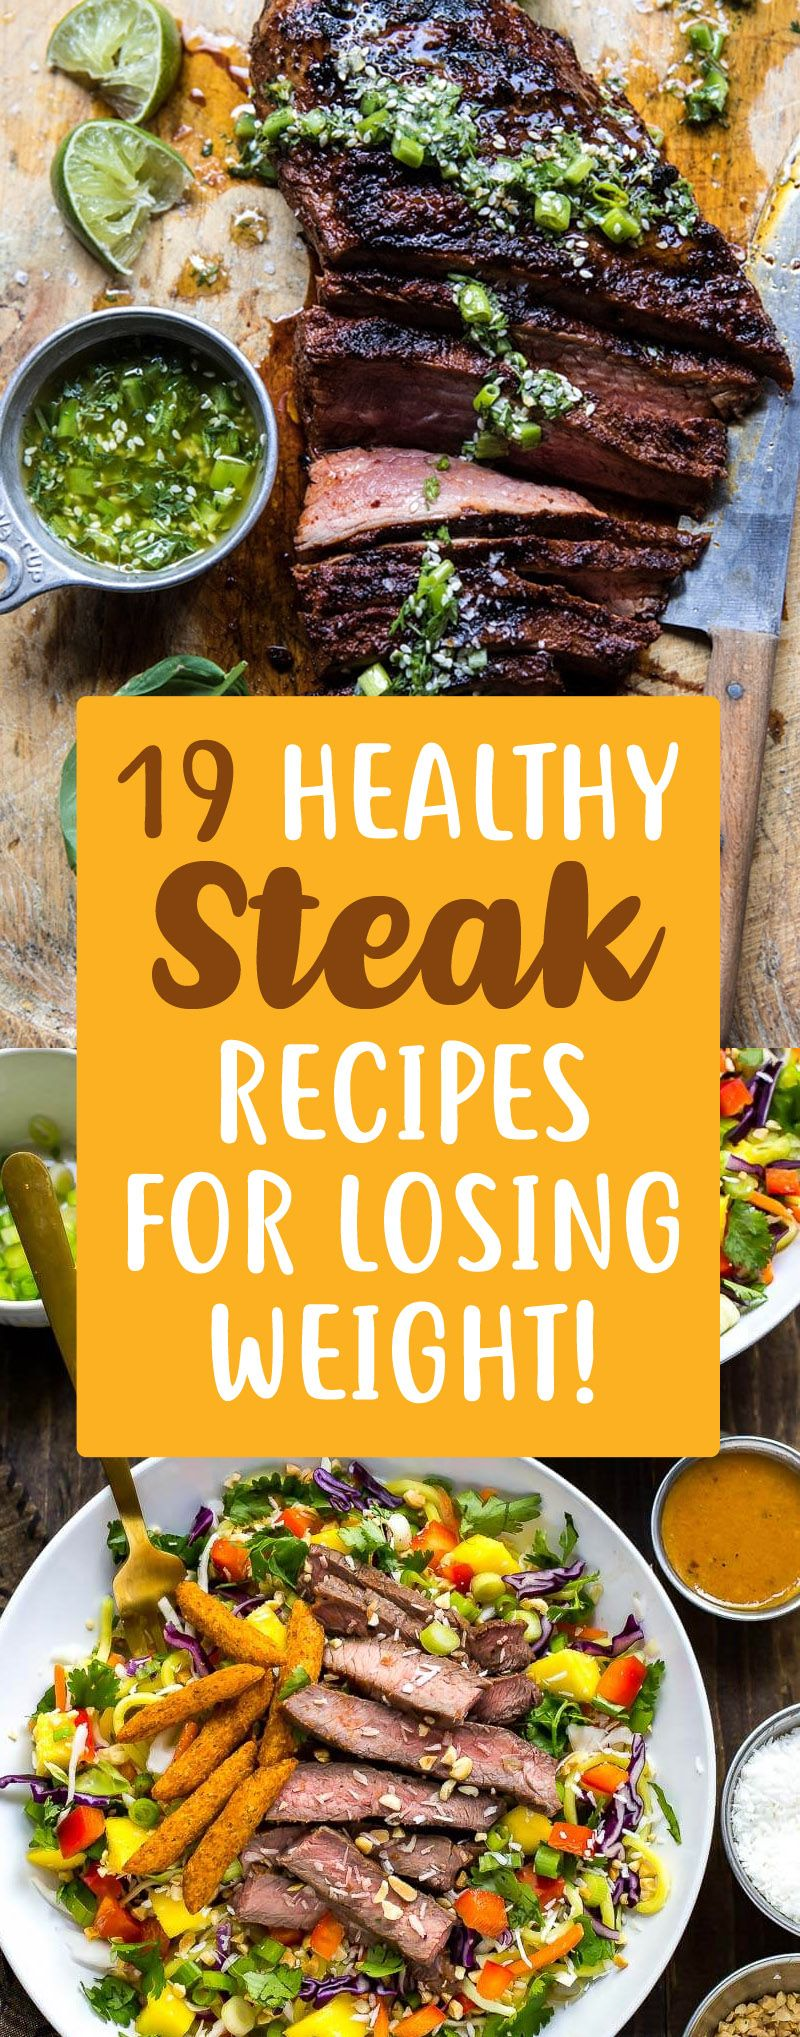 Photo of 19 Weight Loss Steak Recipes That Are Packed Full Of Protein! – TrimmedandToned